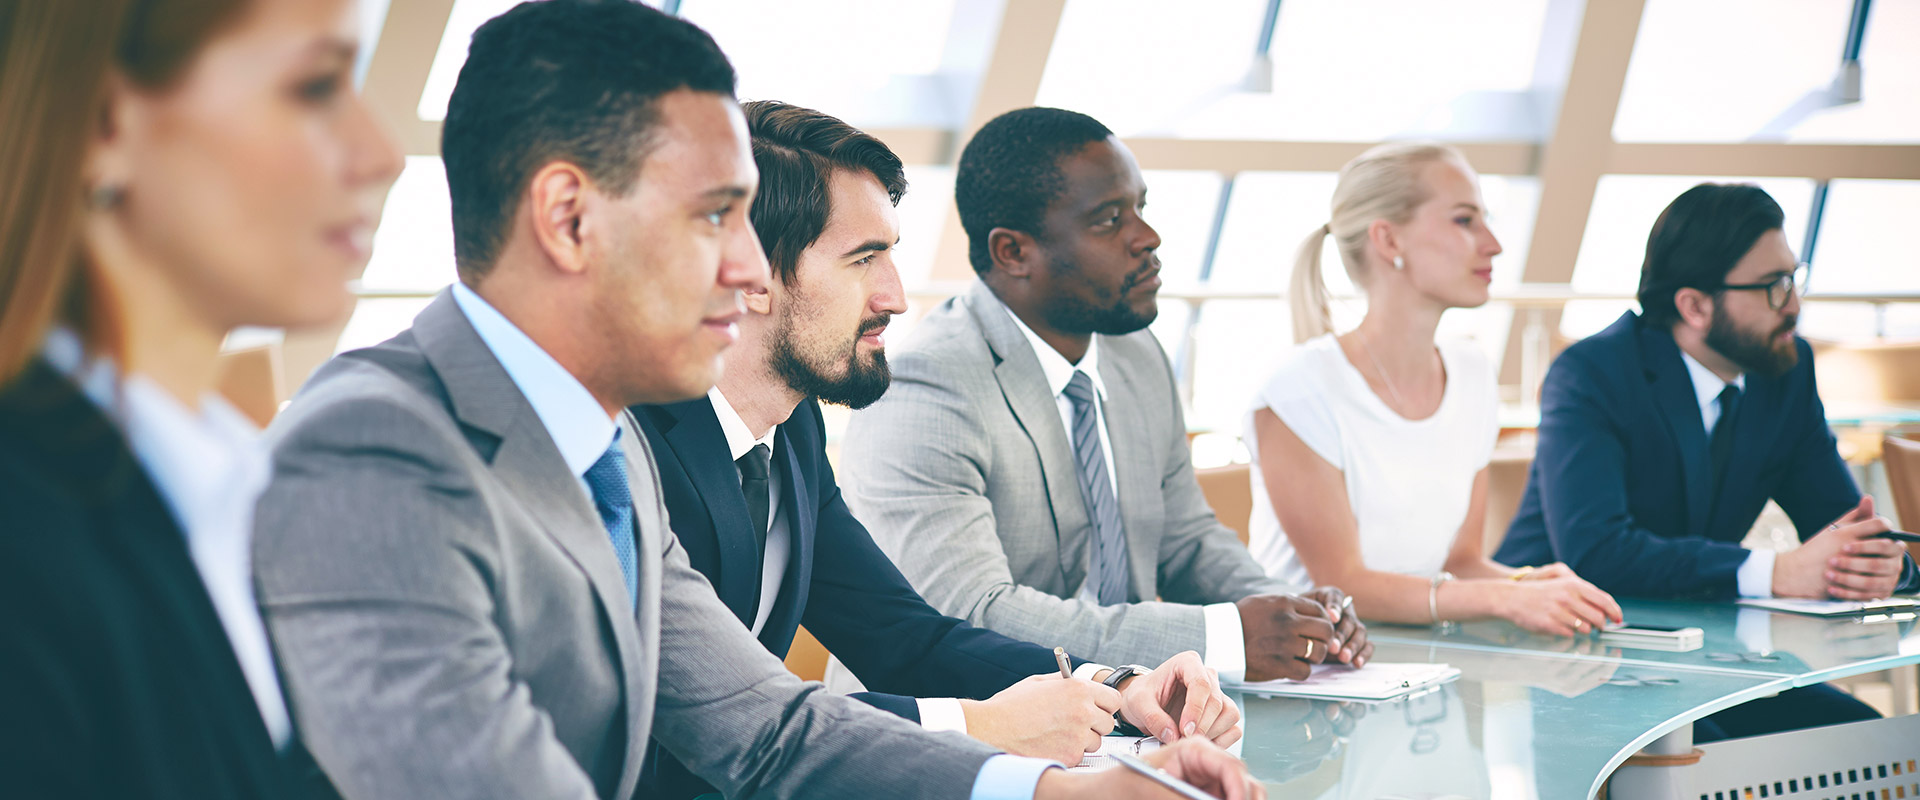 Diversity Meets the Billable Hour at Dorsey & Whitney